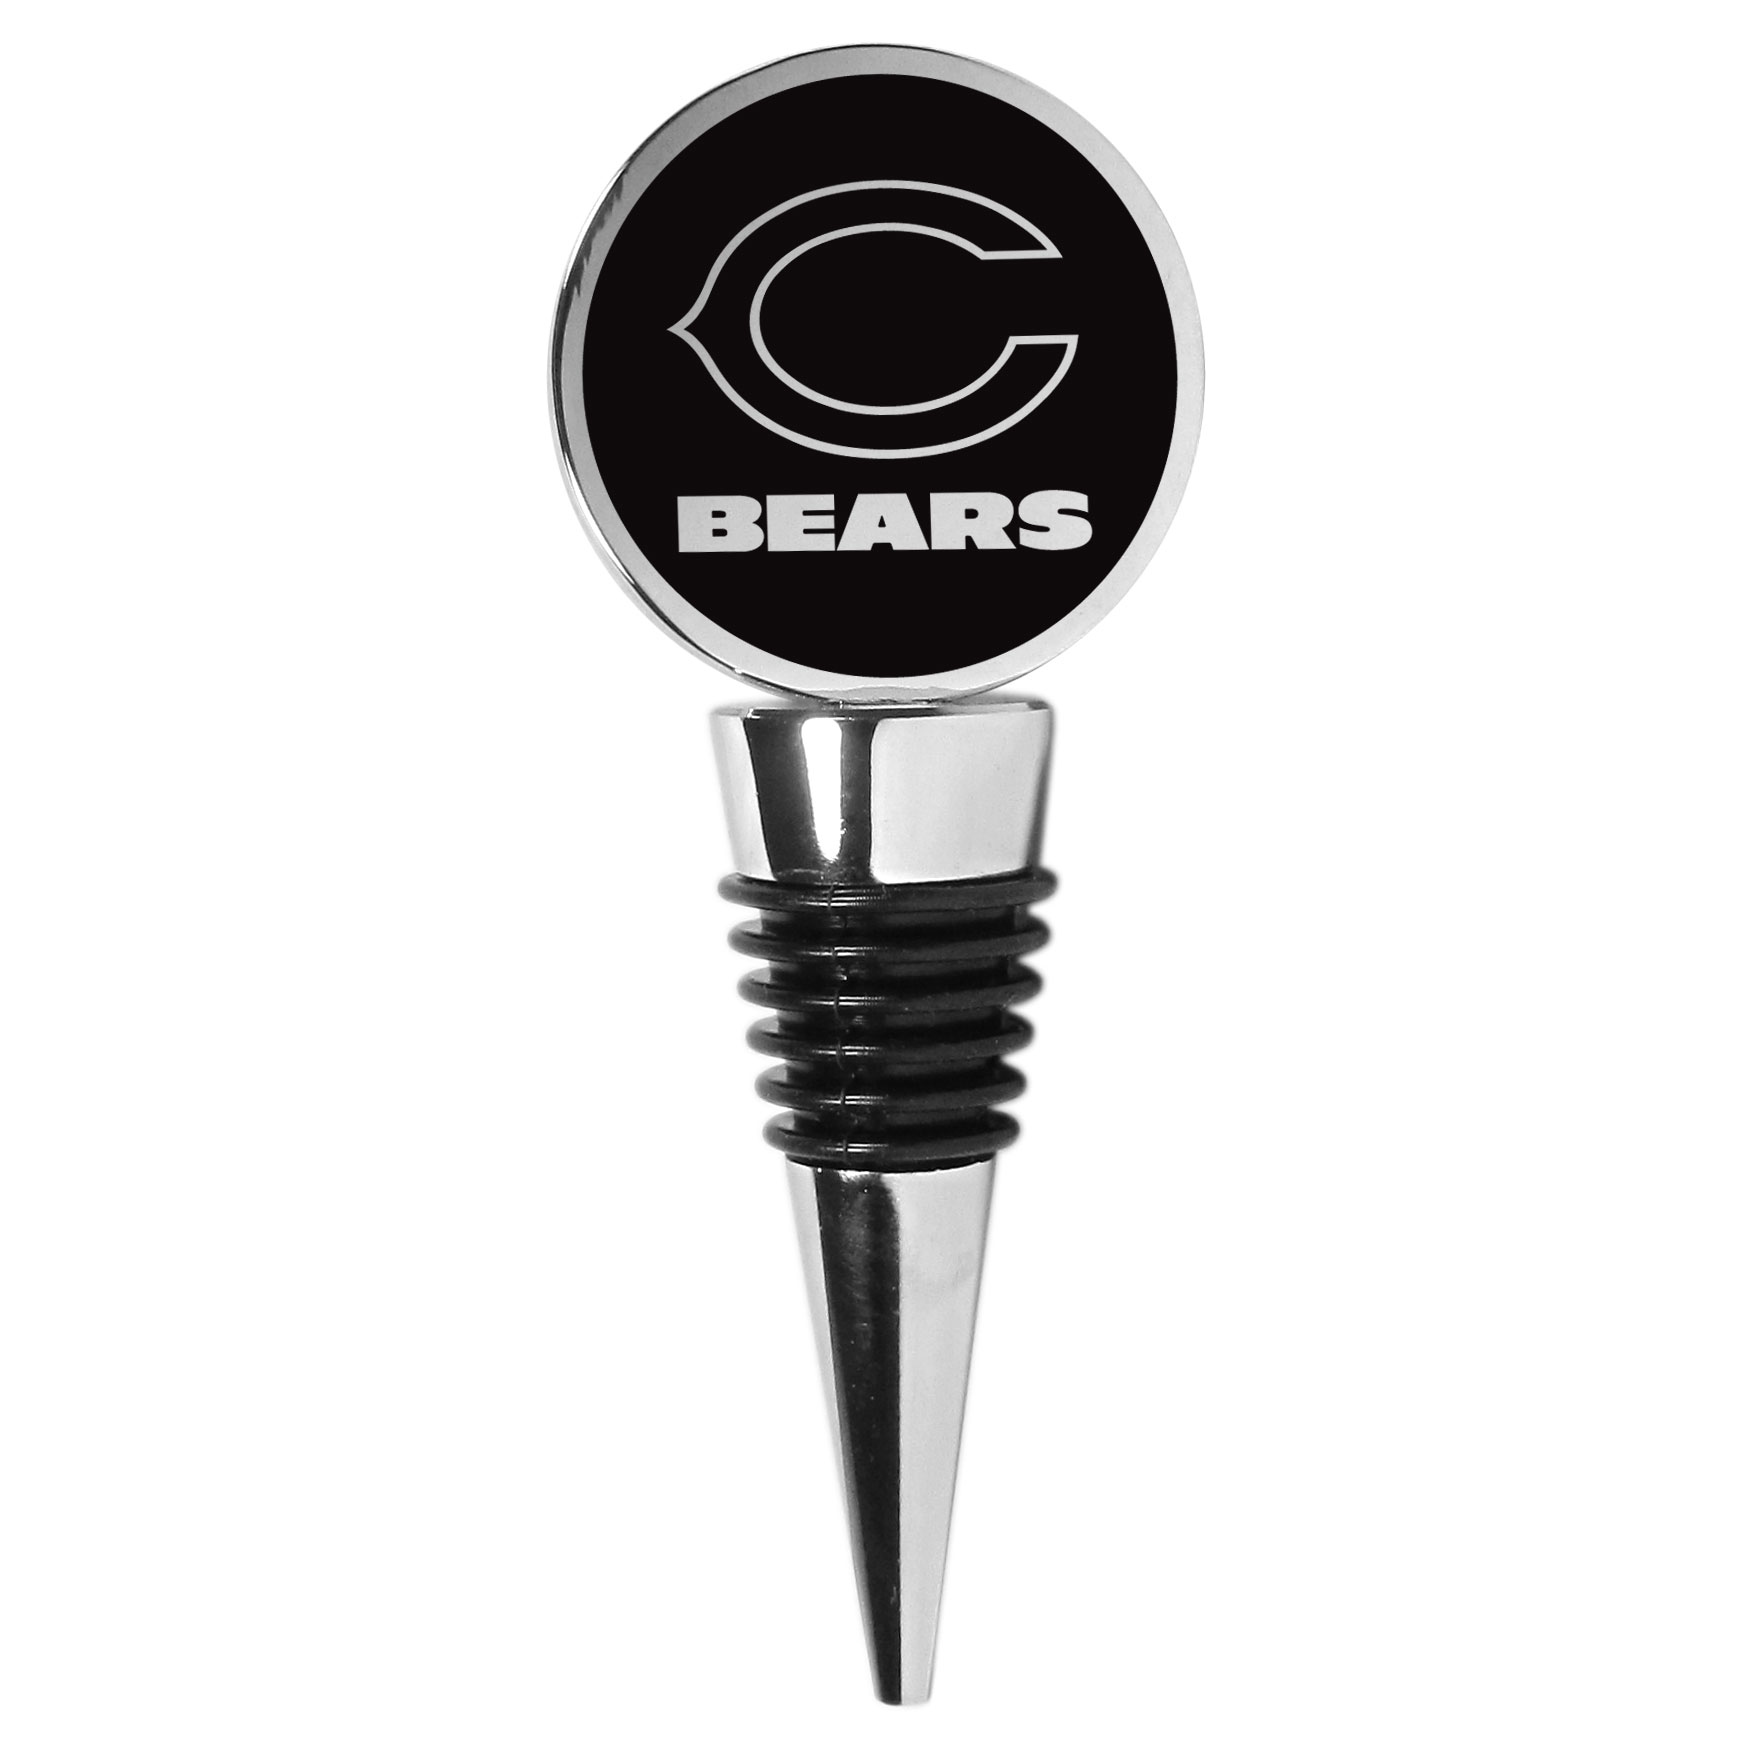 Chicago Bears Wine Stopper - This beautiful Chicago Bears wine stopper has a classy monochromatic logo on the top disc. The tapered rubber rings allow you to create a tight seal on multiple sizes of wine bottles so that you are able to preserve the wine for later enjoyment. This a perfect addition to a game day celebration.